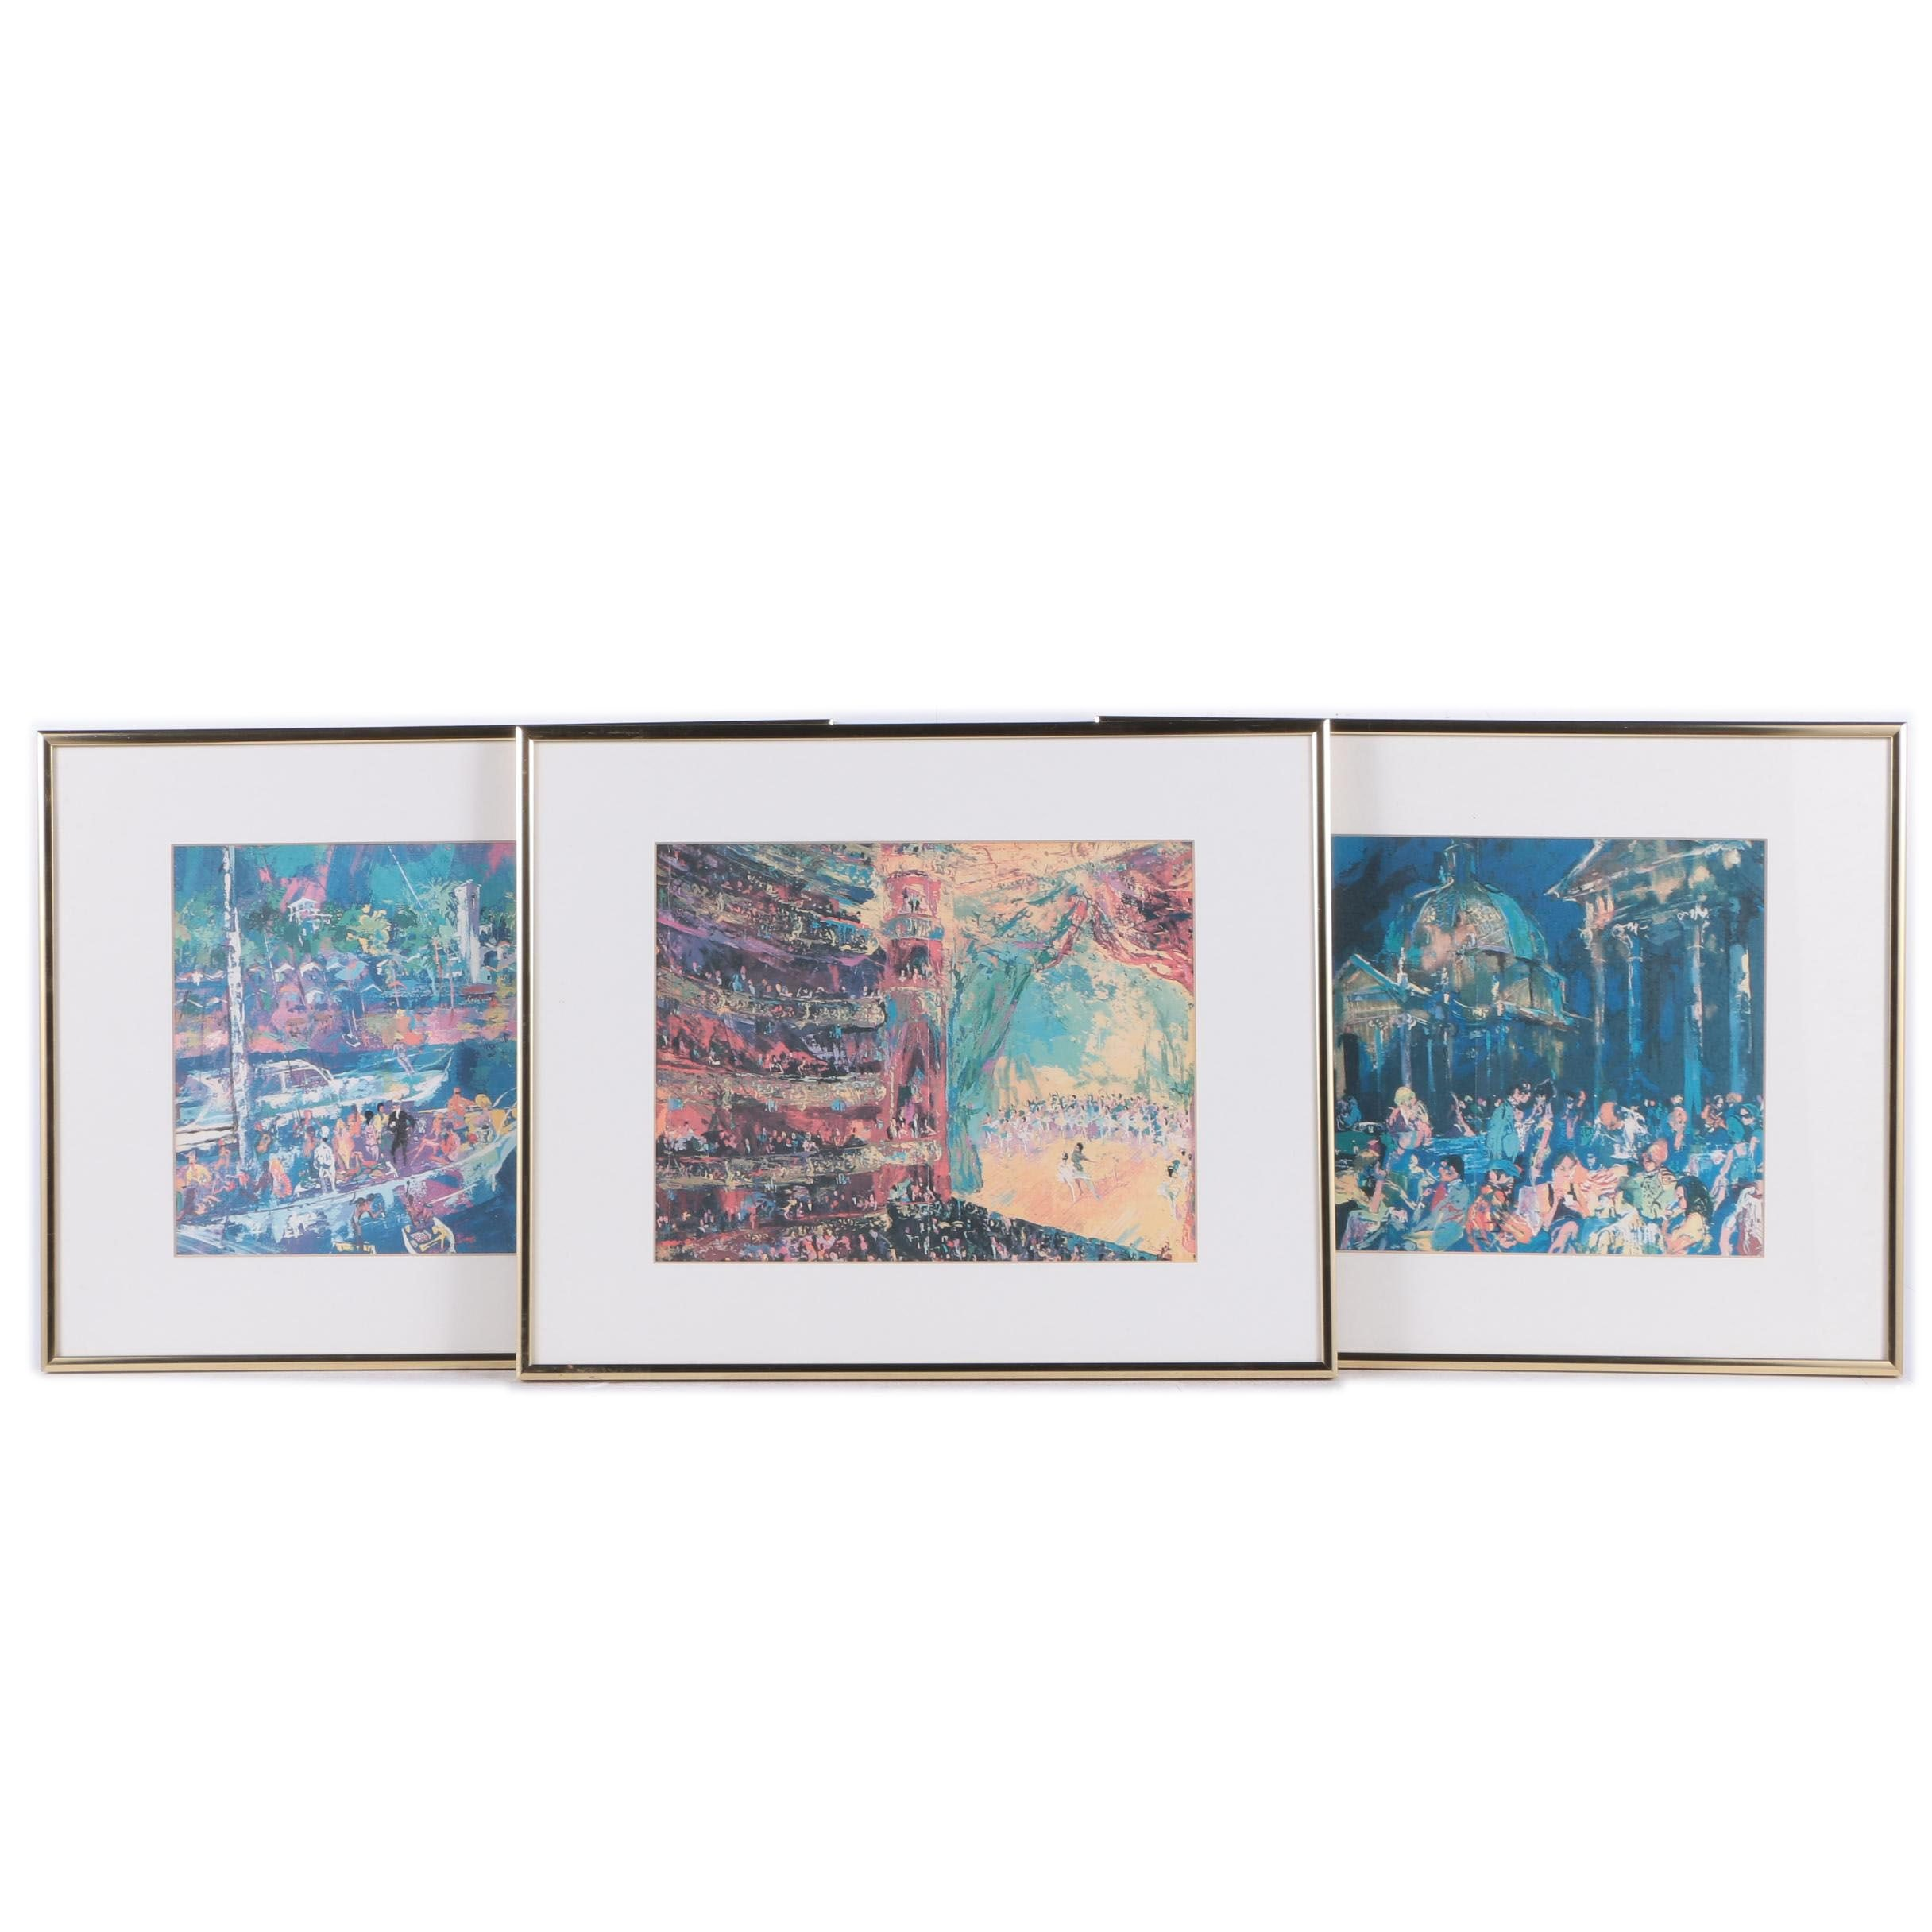 Framed Offset Lithographs after Leroy Neiman